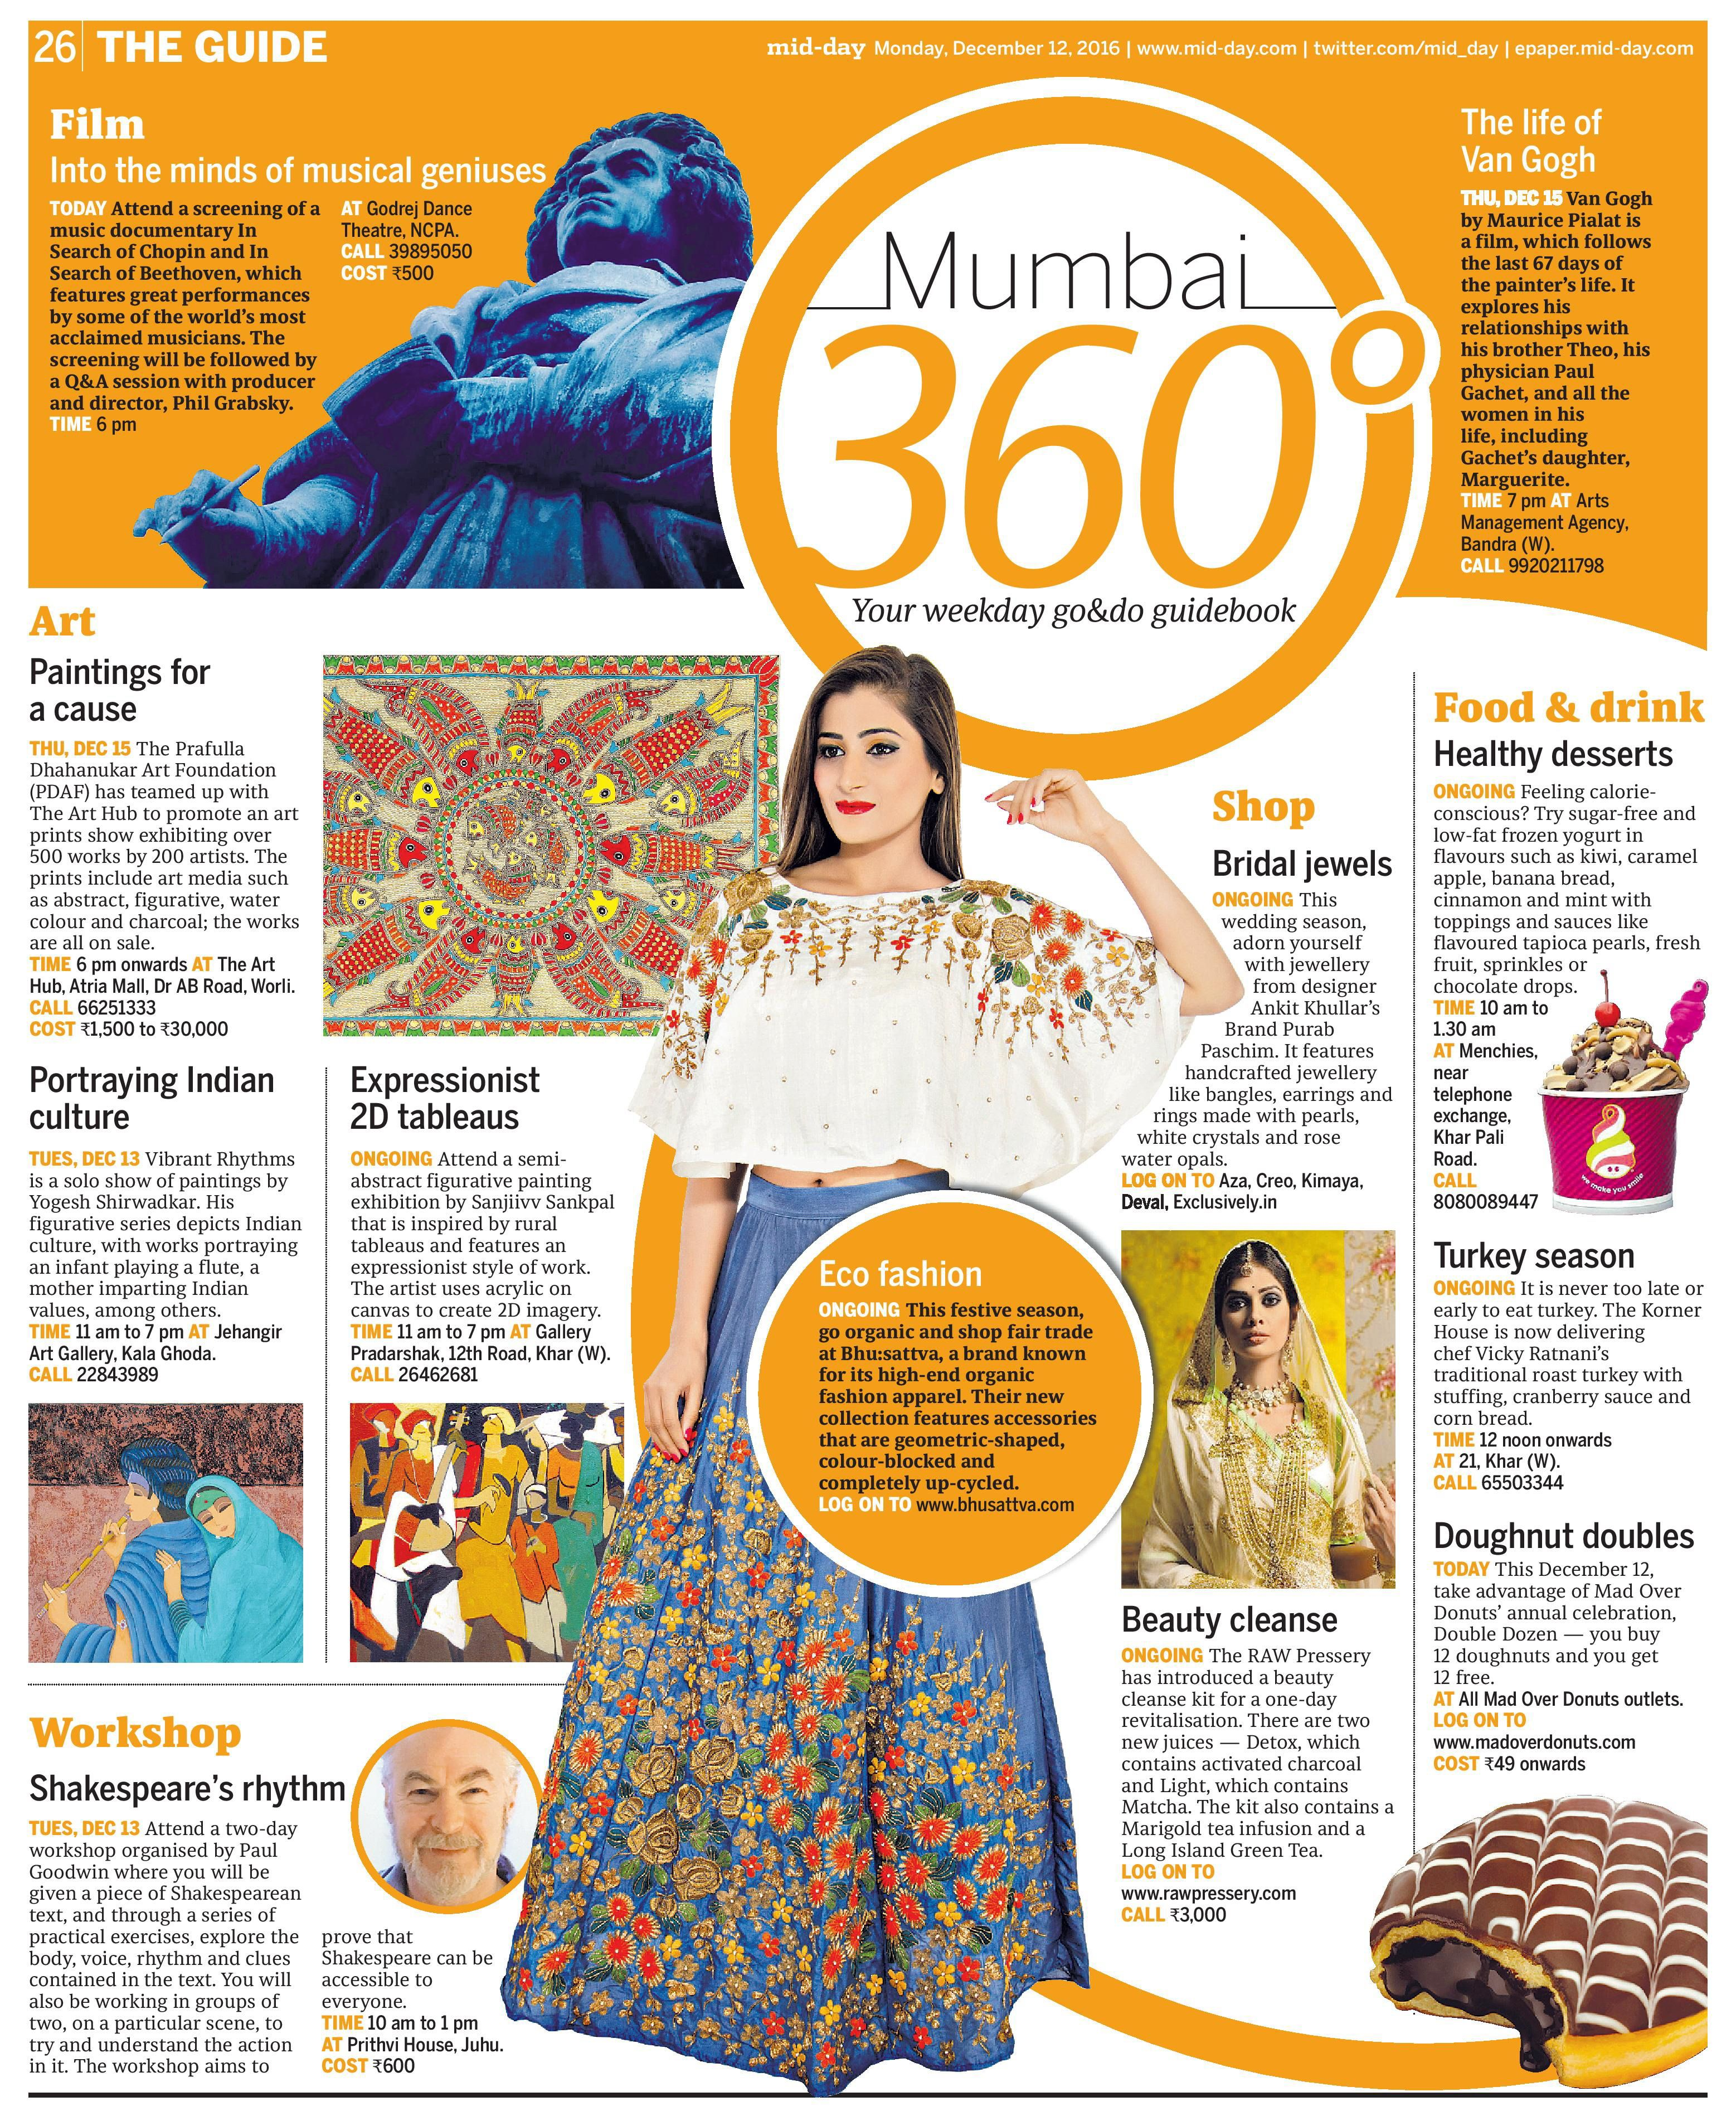 Our Guide to Sustainable development and Eco-Fashion is a good read. Featured in Mumbai 360 Degree. The Guide, Mid-Day, Dec 12, 2016.   #Bhusattva #Organic #Pret #Couture #OrganicGuide #MidDay #TheGuide #Mumbai360 #Essentials #HandEmbroidered #SkinFriendly #BreatheEasy #ReflectOrganic #RevealYourself #iWearBhusattva #BelieveWhatYouWear #TrustNature #MysticalNature #CloseToNature #OrganicIdeology #OrganicCollection #NaturalDyes #EcoFashion #OrganicFashion #SustainableFashion